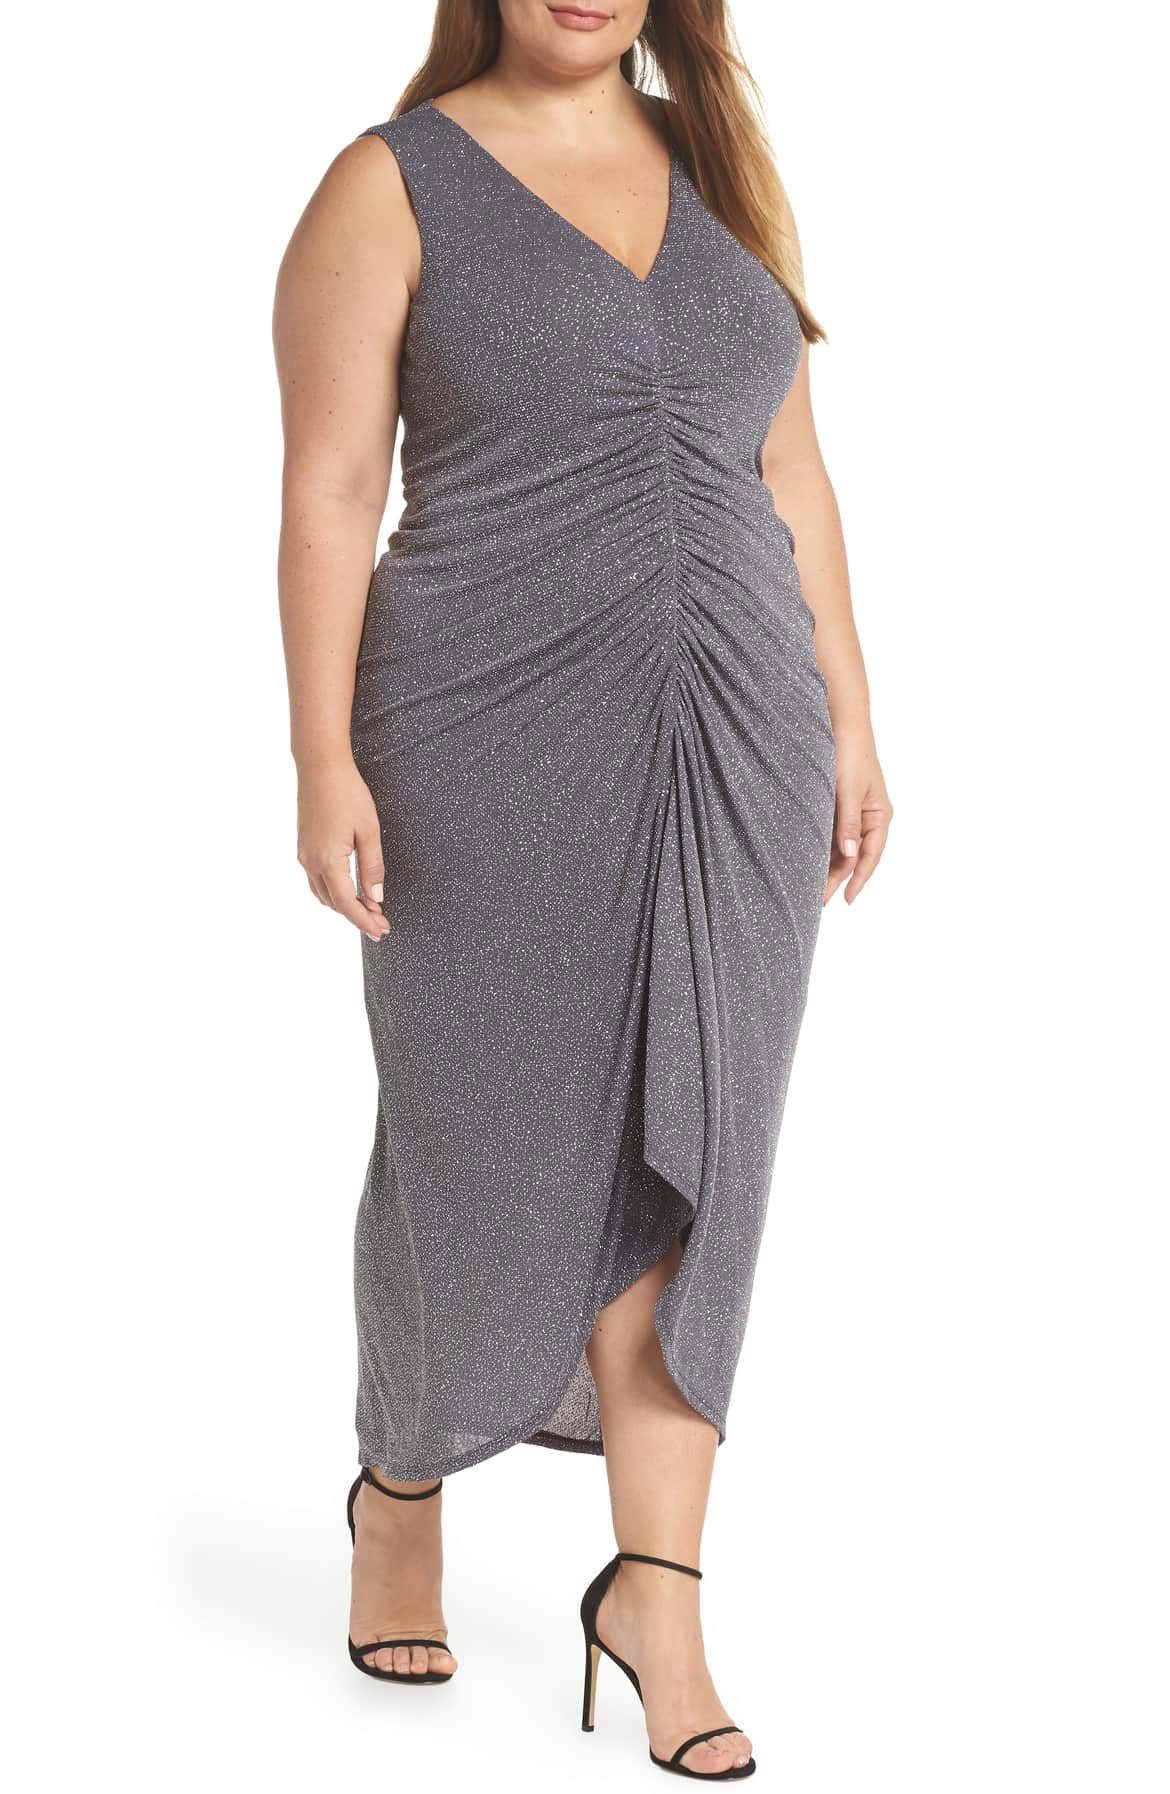 <p>Sprinkled in shimmering metallic sparkle, this figure-flattering evening dress will turn every head in the room. $198. (Image: Nordstrom){&amp;nbsp;}</p><p></p>